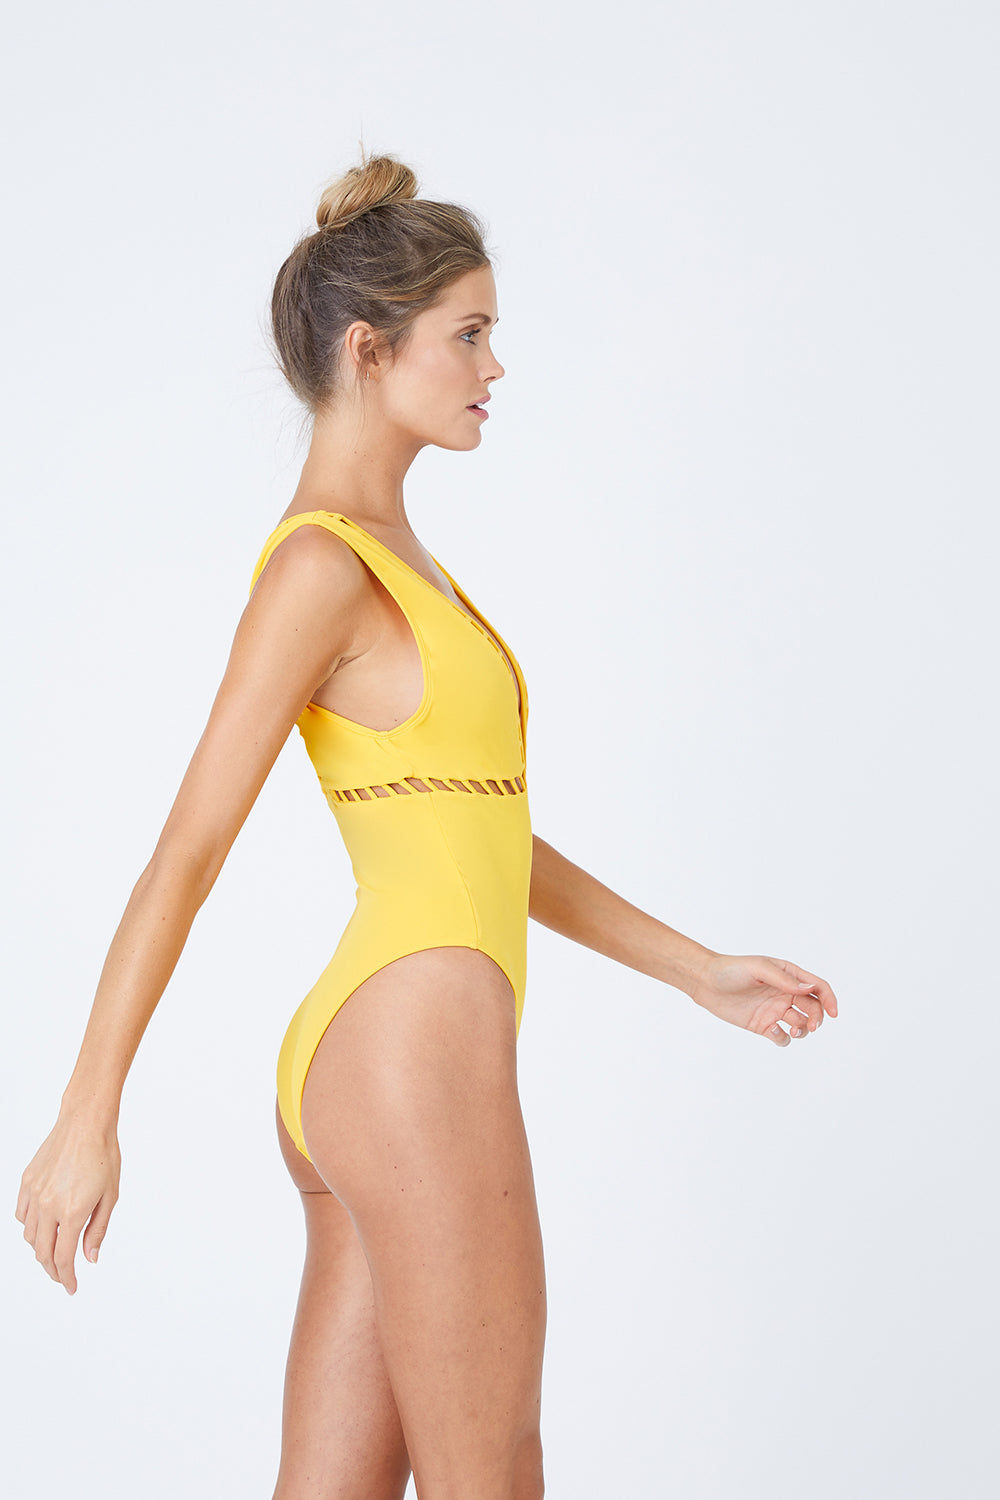 OYE SWIMWEAR Ela Plunge Cut Out High Cut One Piece Swimsuit - Yellow One Piece | Yellow| Oye Swimwear Ela Plunge Cut Out High Cut One Piece Swimsuit - Yellow Plunging V Neckline  Cut Out Pattern Detail  Thick Shoulder Straps  High Cut Leg  Moderate Coverage  80% Polyamide, 20%Lycra® Hand wash only Handmade in Istanbul, Turkey High quality Italian material Side View